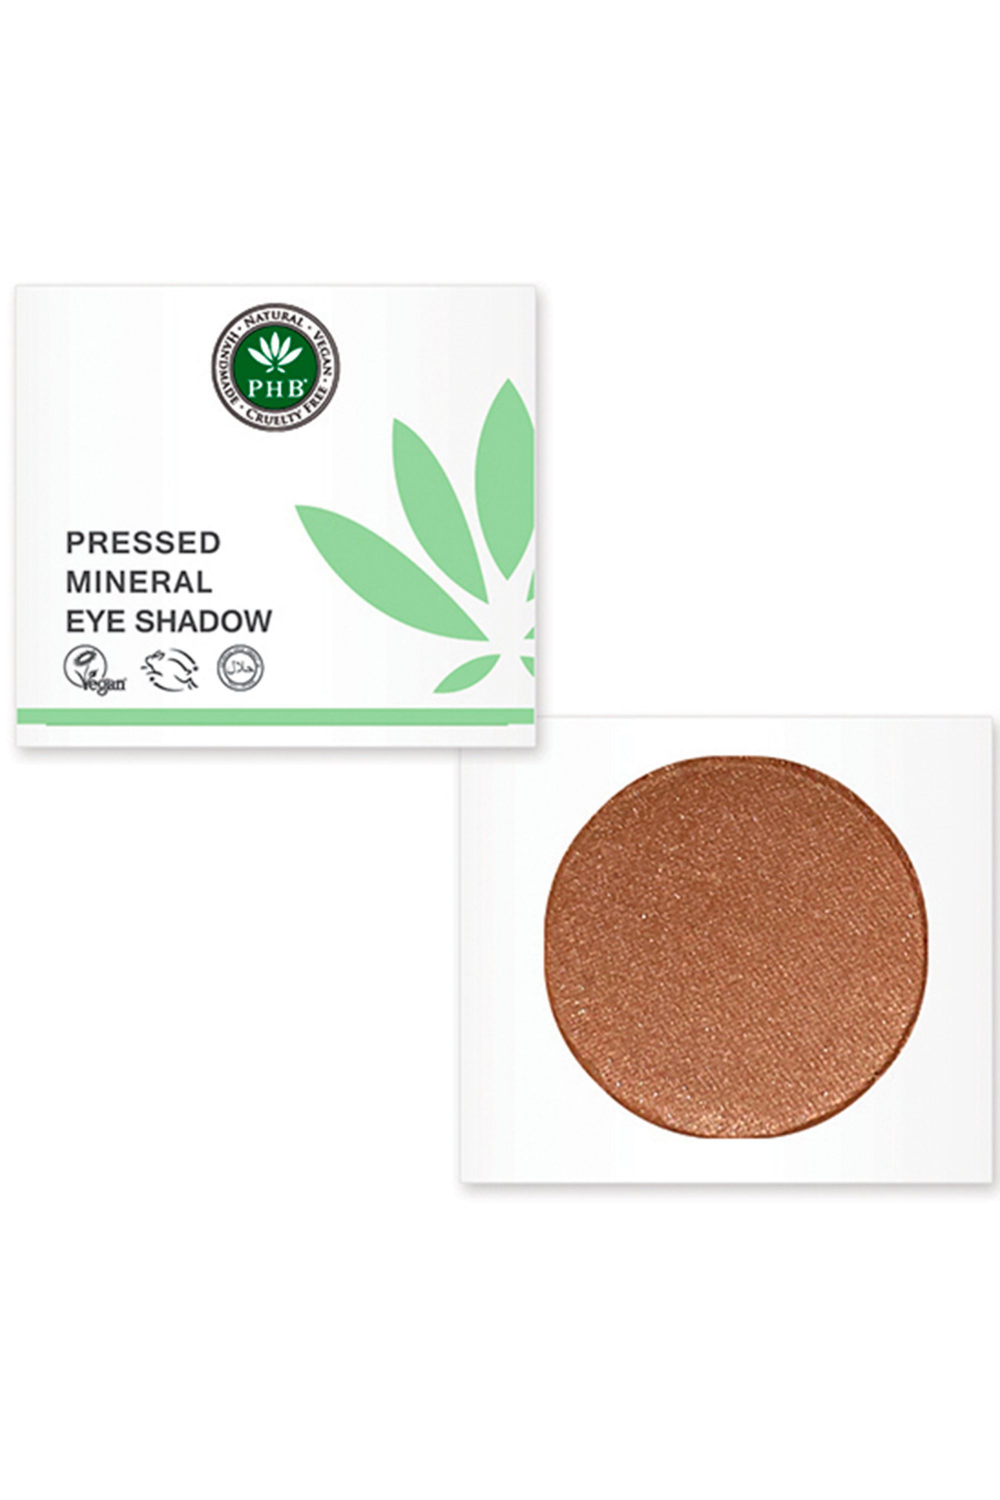 PHB Ethical Beauty Pressed Mineral Eyeshadow Chestnut 3g